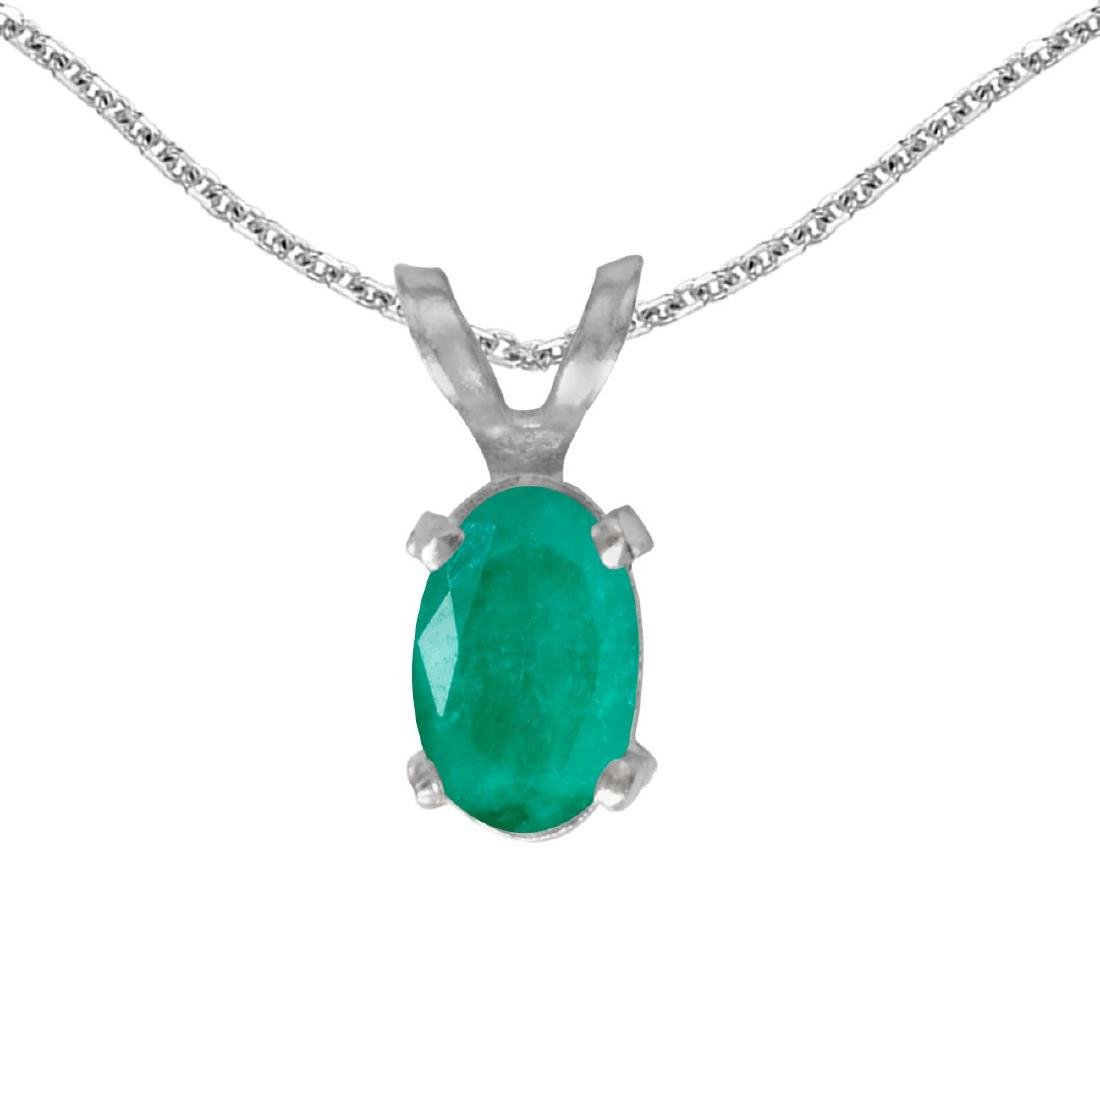 Certified 14k White Gold Oval Emerald Pendant 0.31 CTW